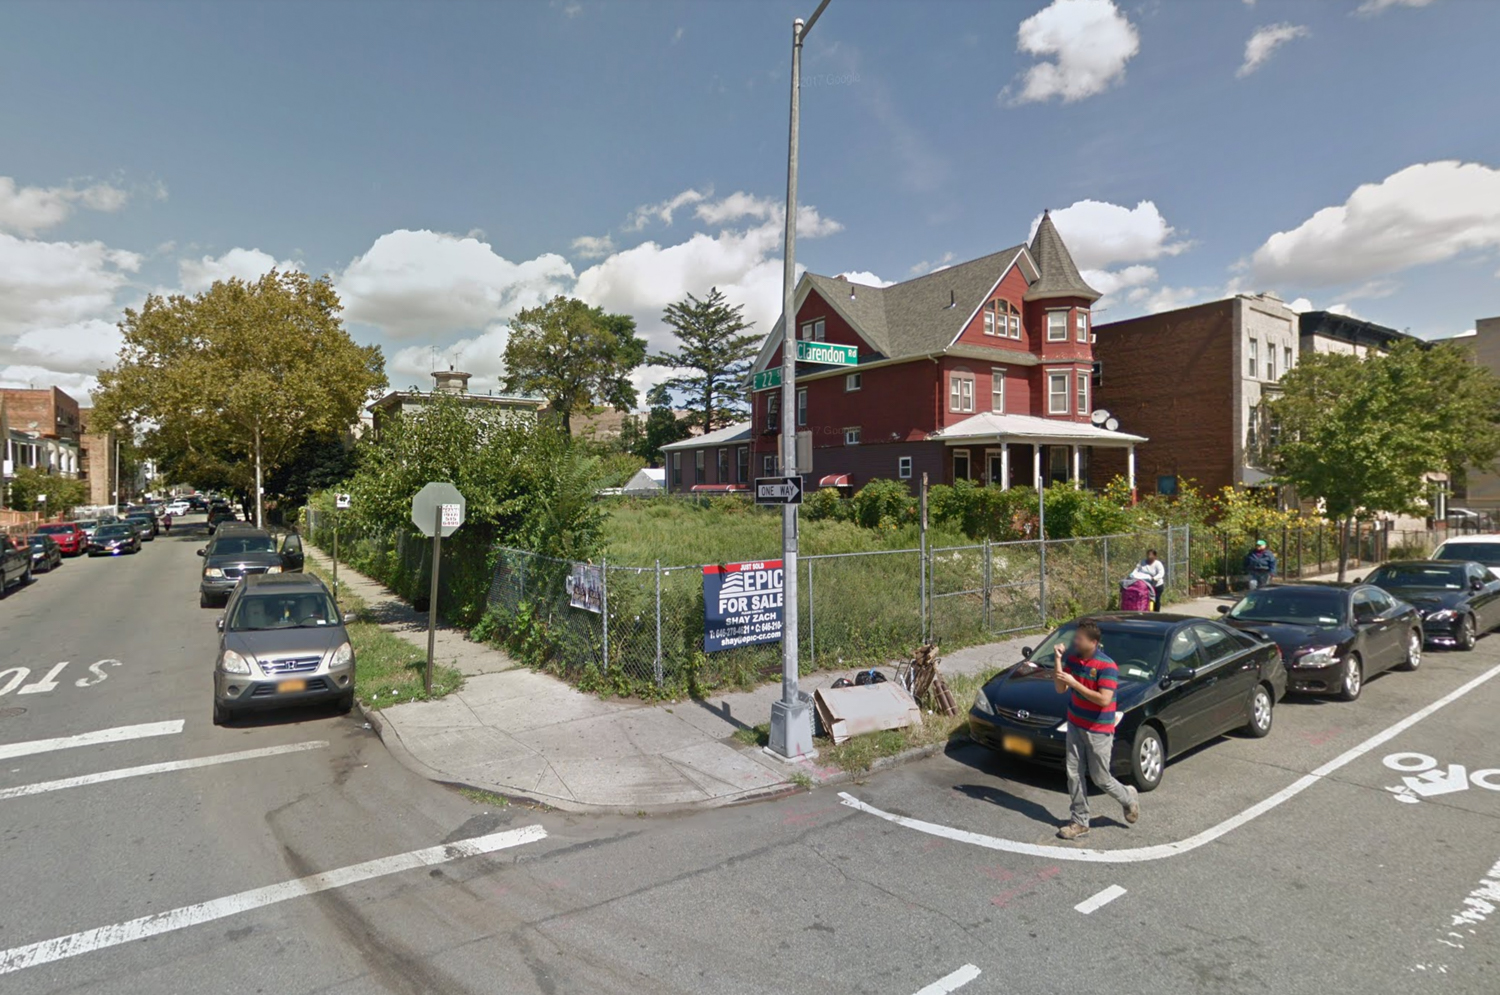 2203 Clarendon Road, via Google Maps